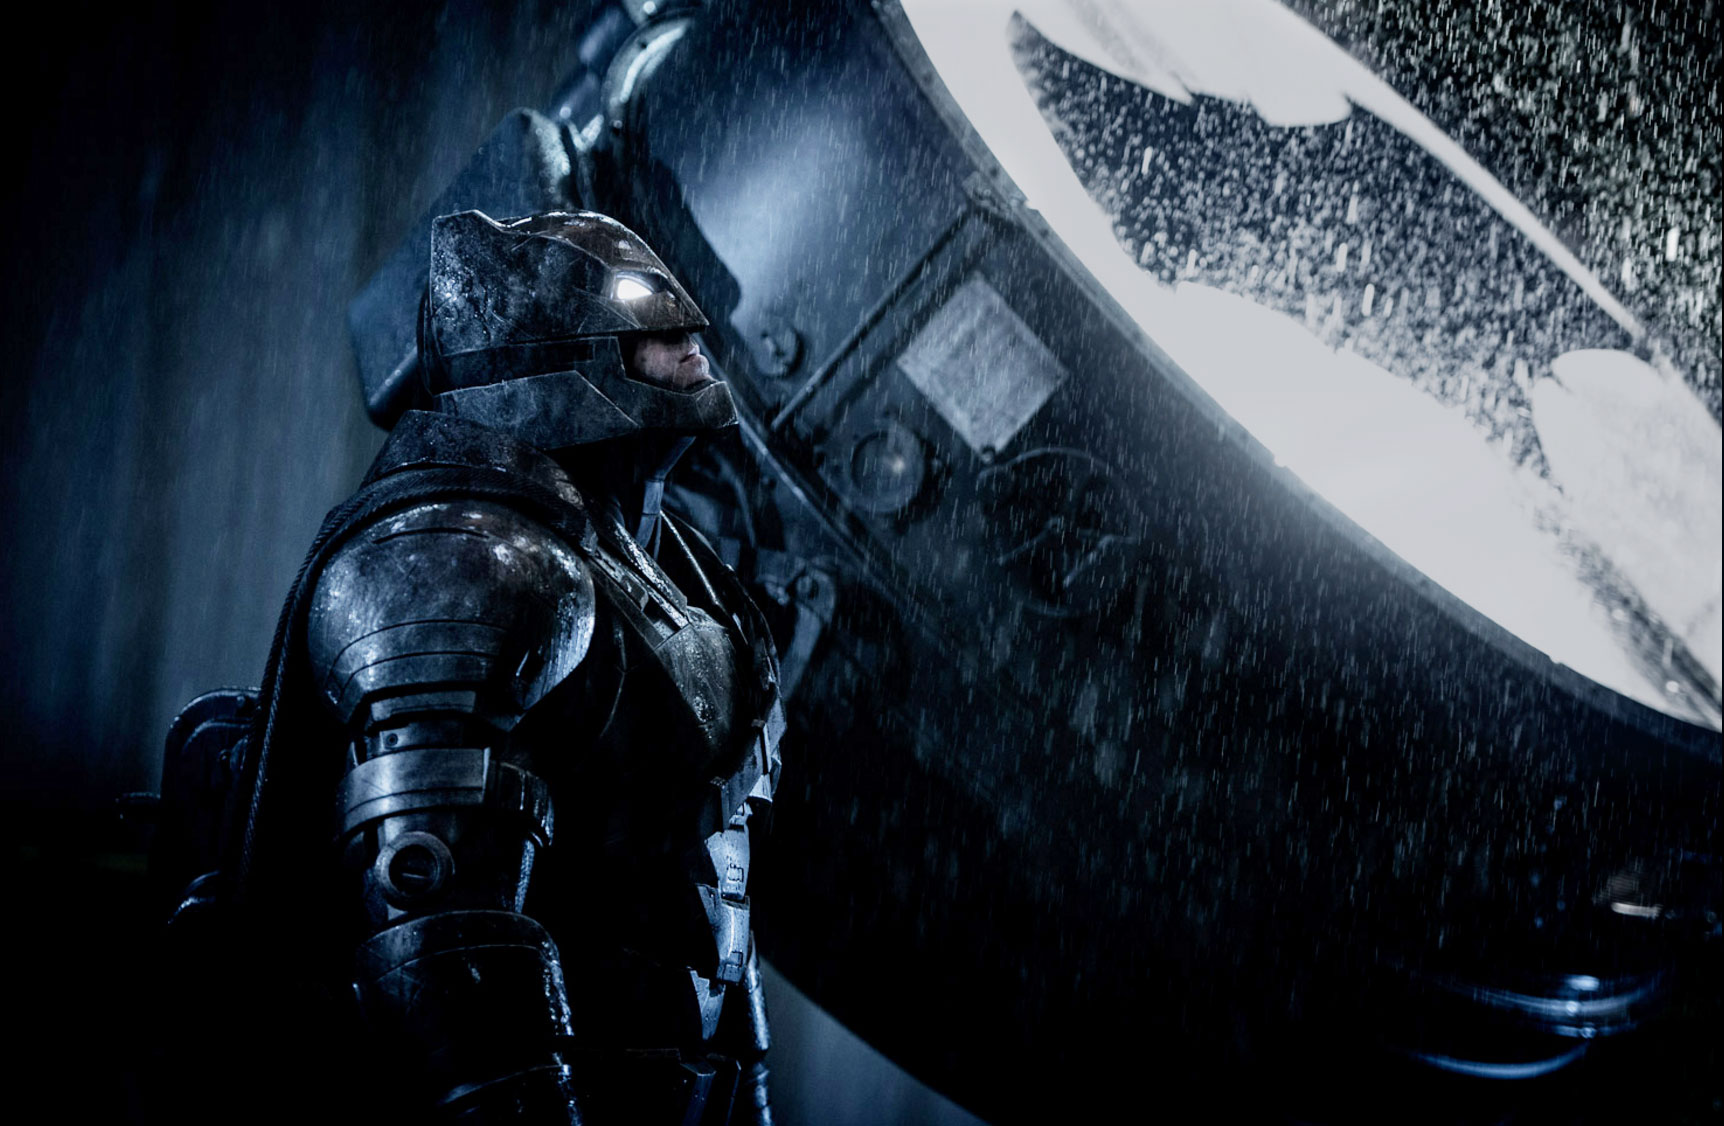 The one interesting thing about Batman v Superman: Dawn of Justice